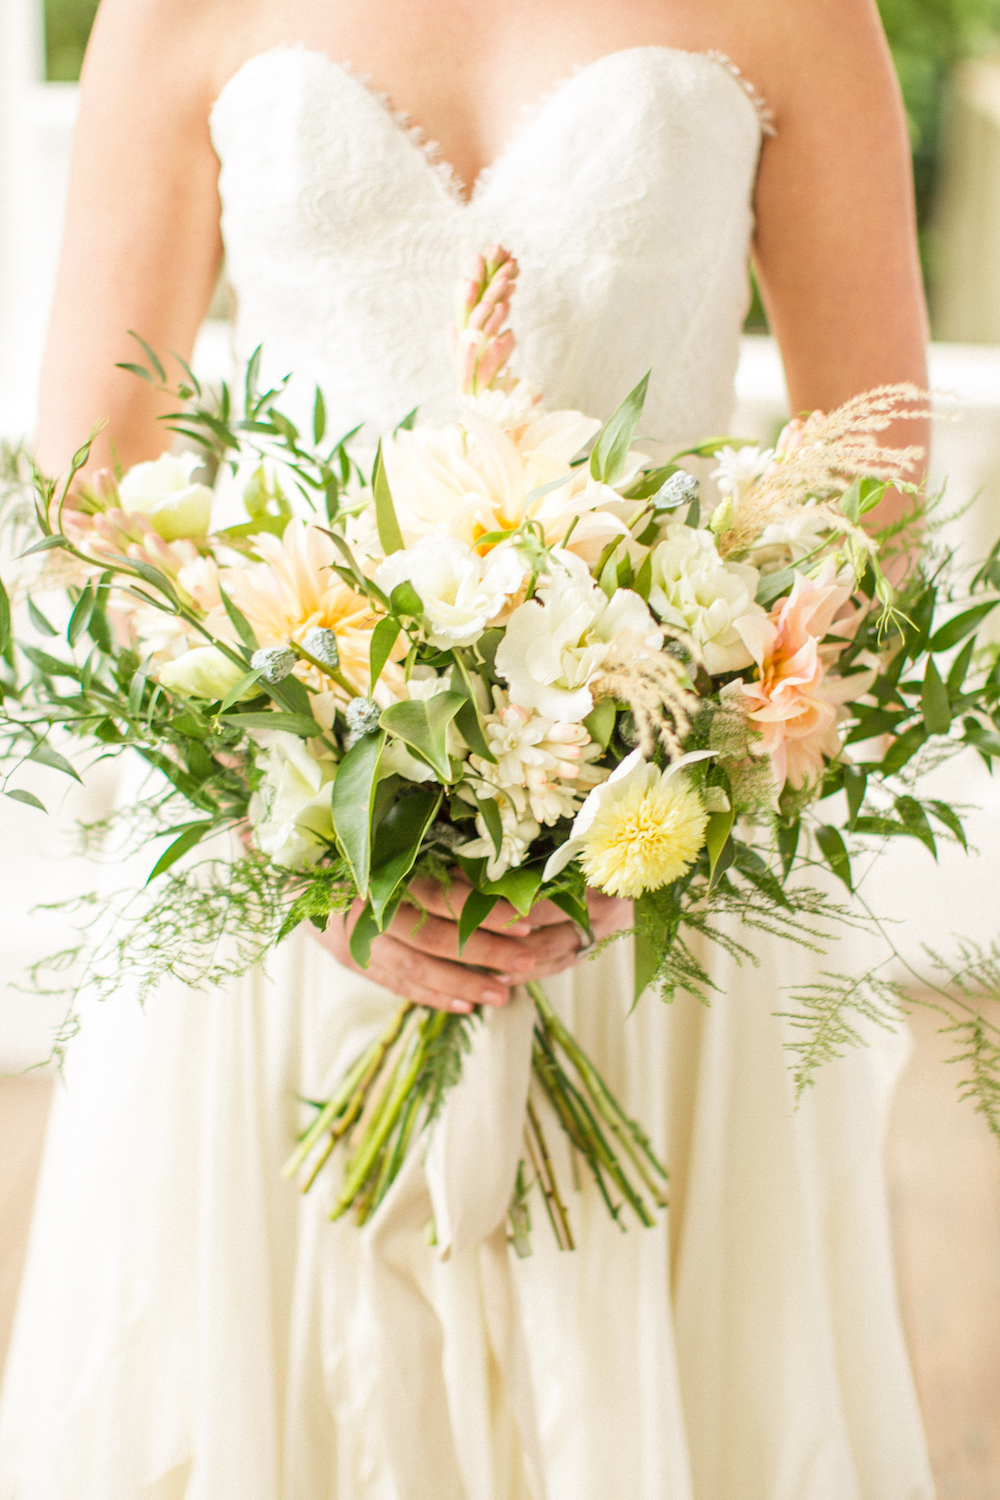 Cozy, Ethereal Wedding Inspiration at The General's Daughter, generals daughter wedding inspiration, wedding bouquet